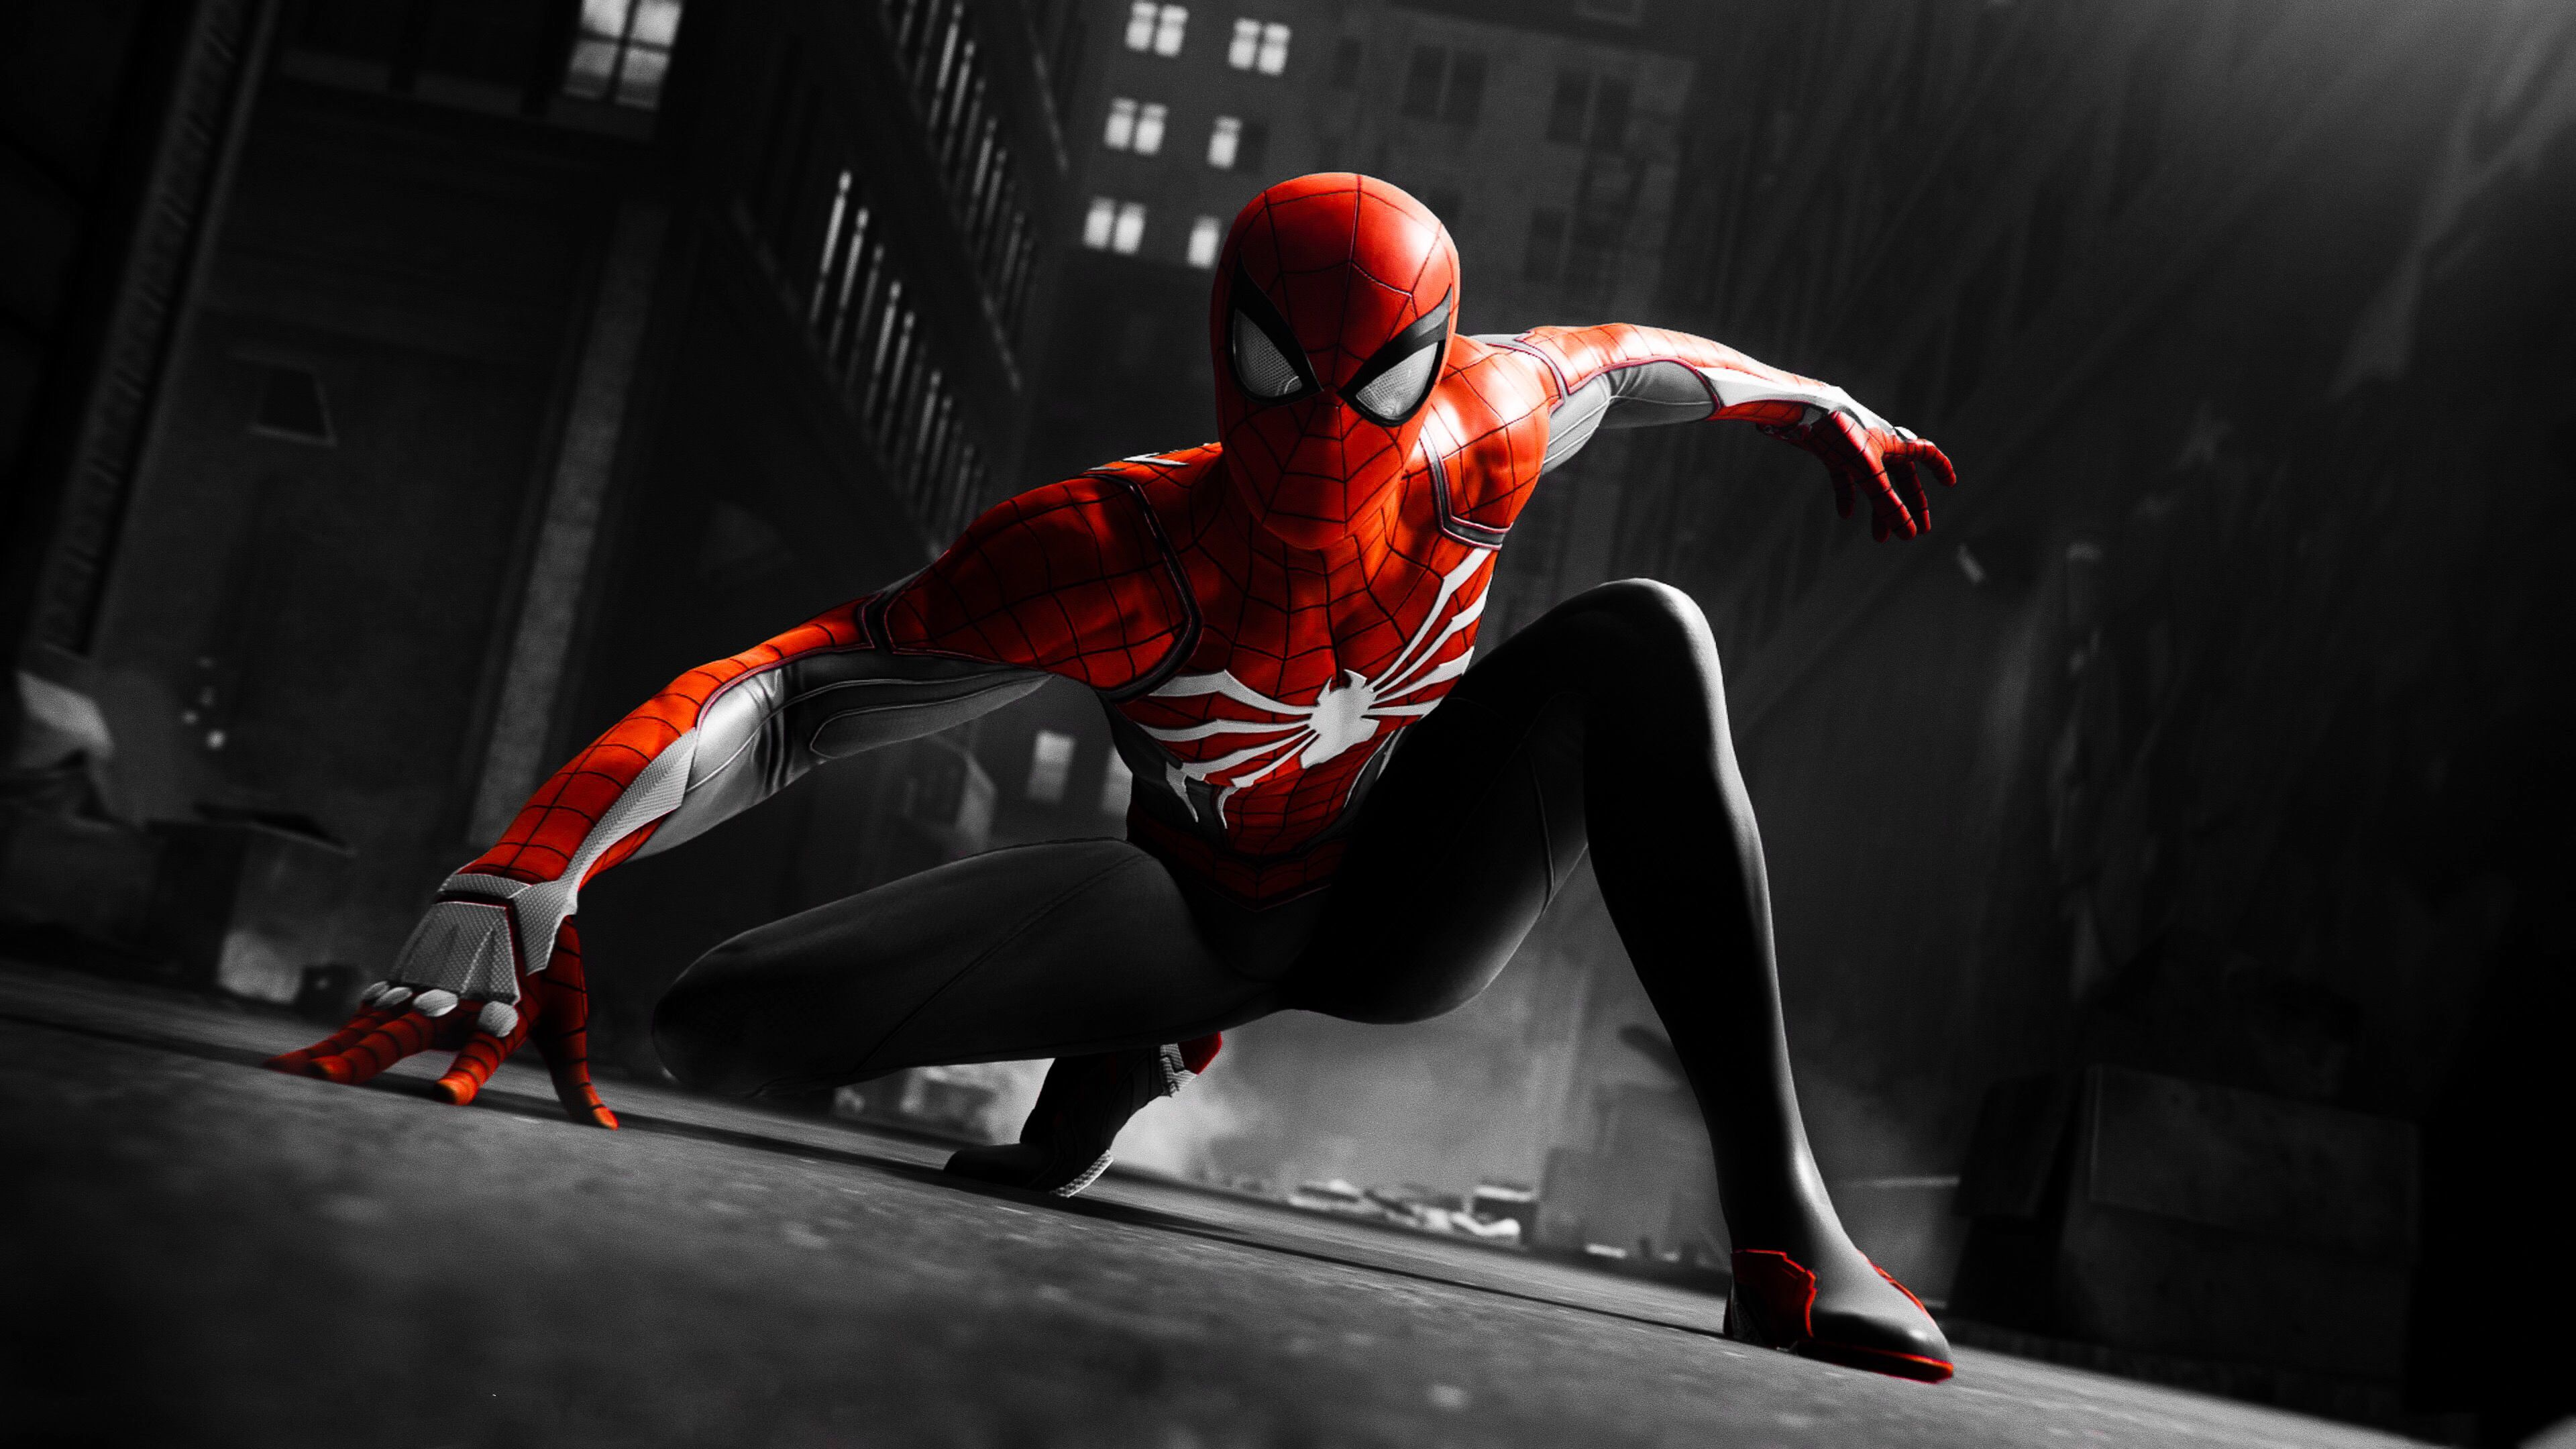 Black And Red Spiderman 4k Hd Superheroes 4k Wallpapers Images